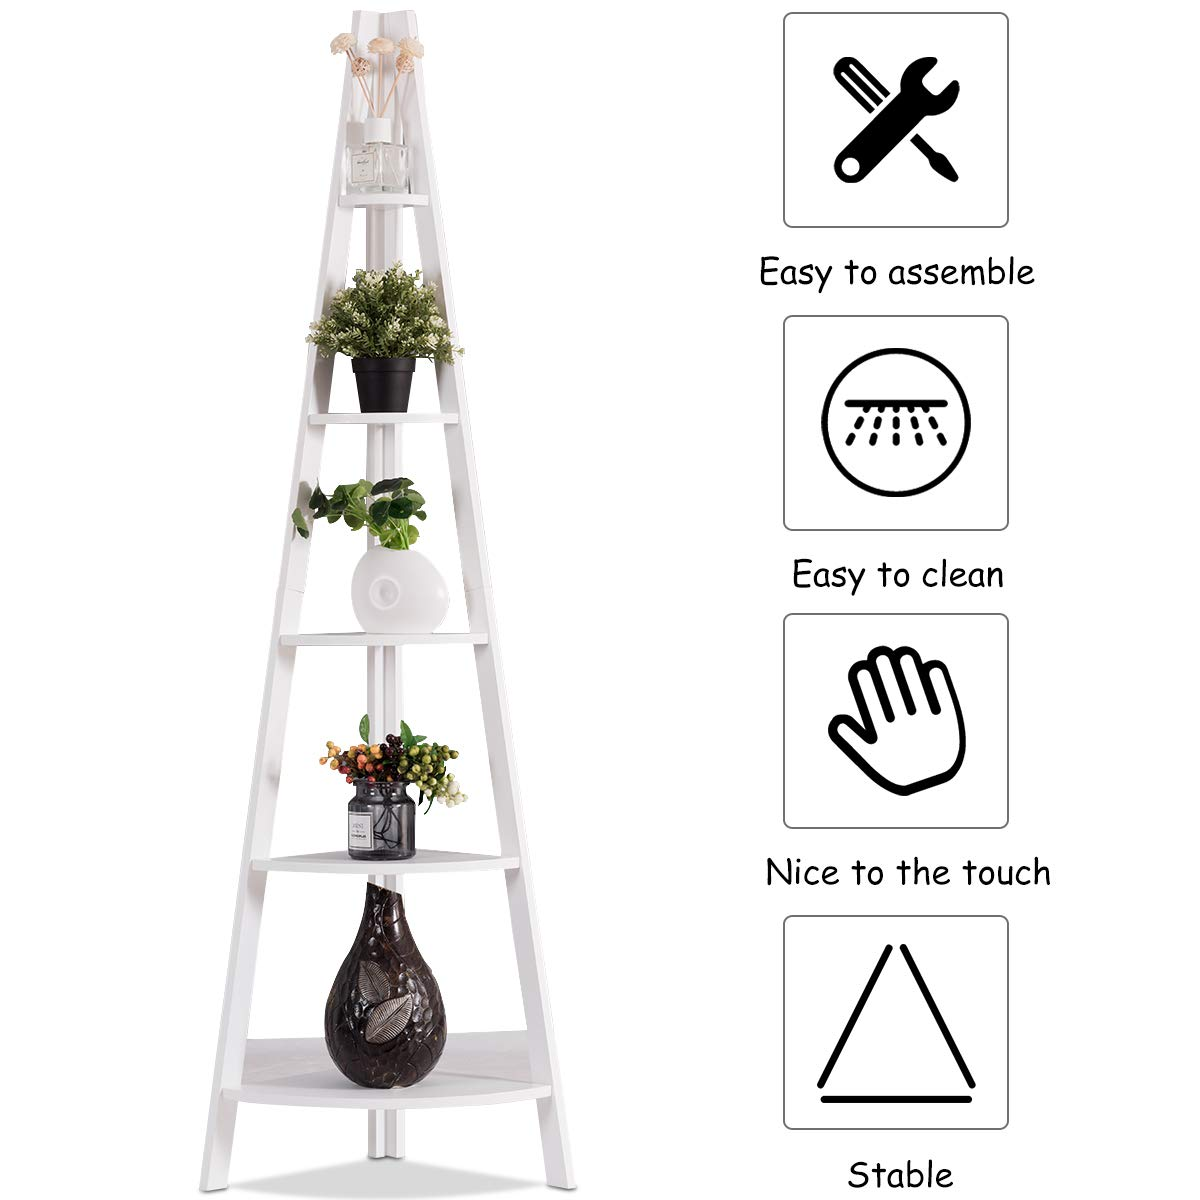 Bookcase for Display Wooden Contemporary Rustic Style Bookshelf Tangkula 5-Tier Corner Ladder Shelf Storage Rack A-Shaped Durable Frame Plant Stand Storage in Home Office Living Room Bedroom